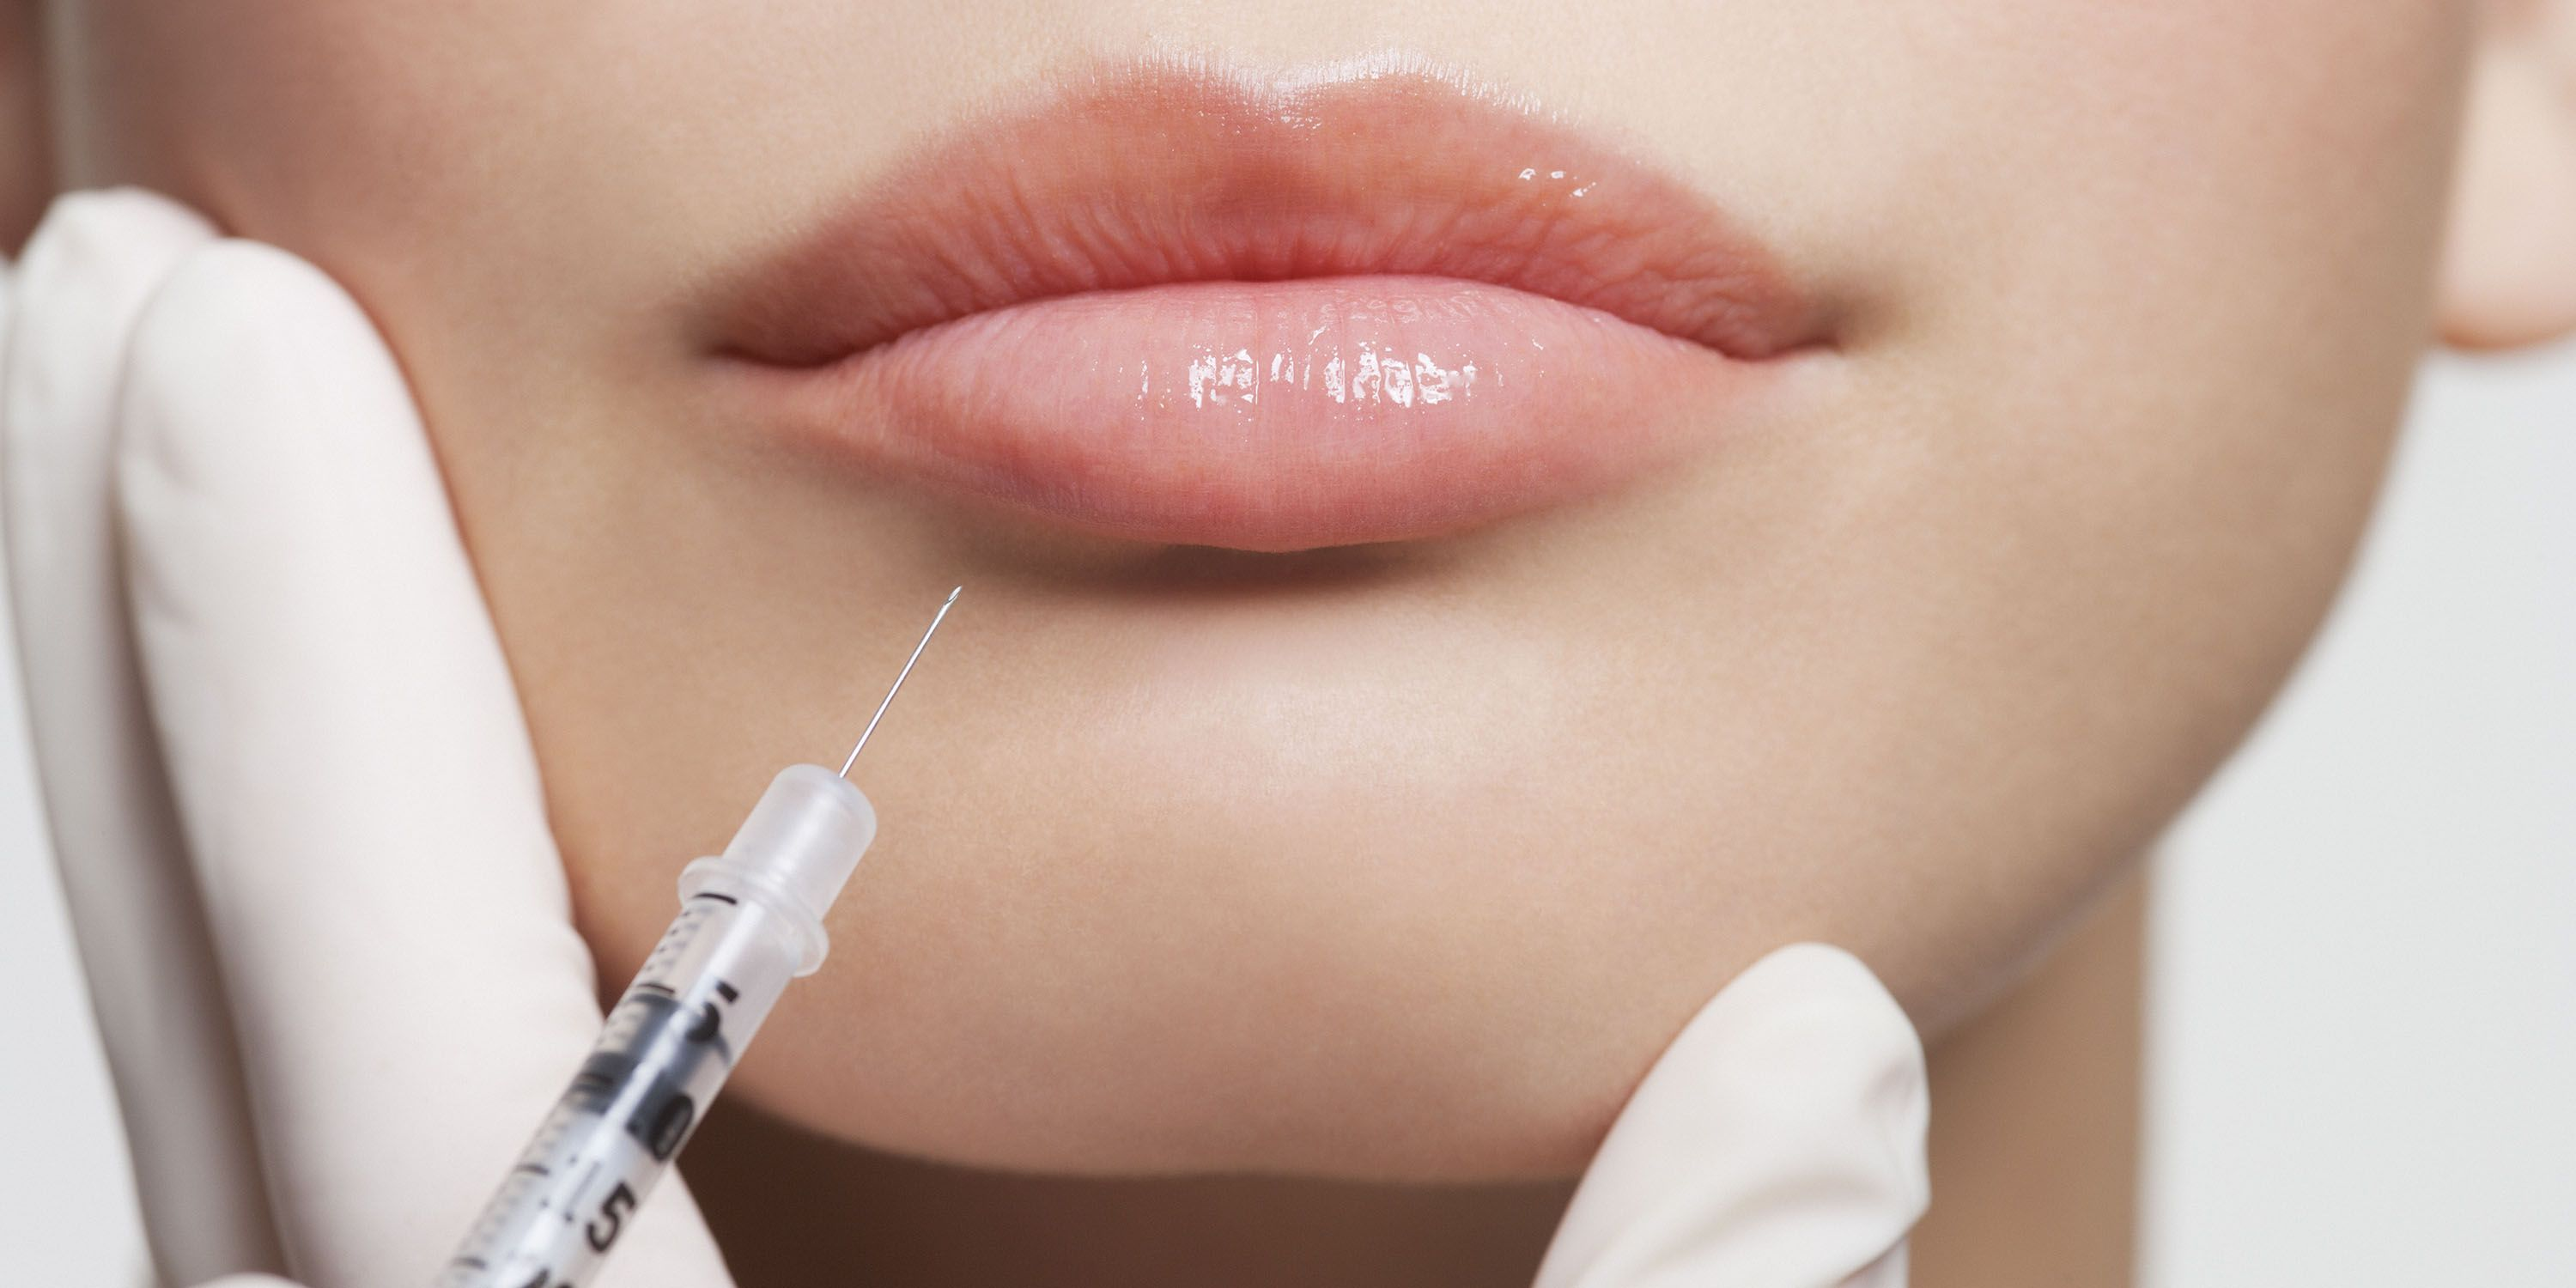 What You Need to Know About the New Double Chin Injection - FDA ...